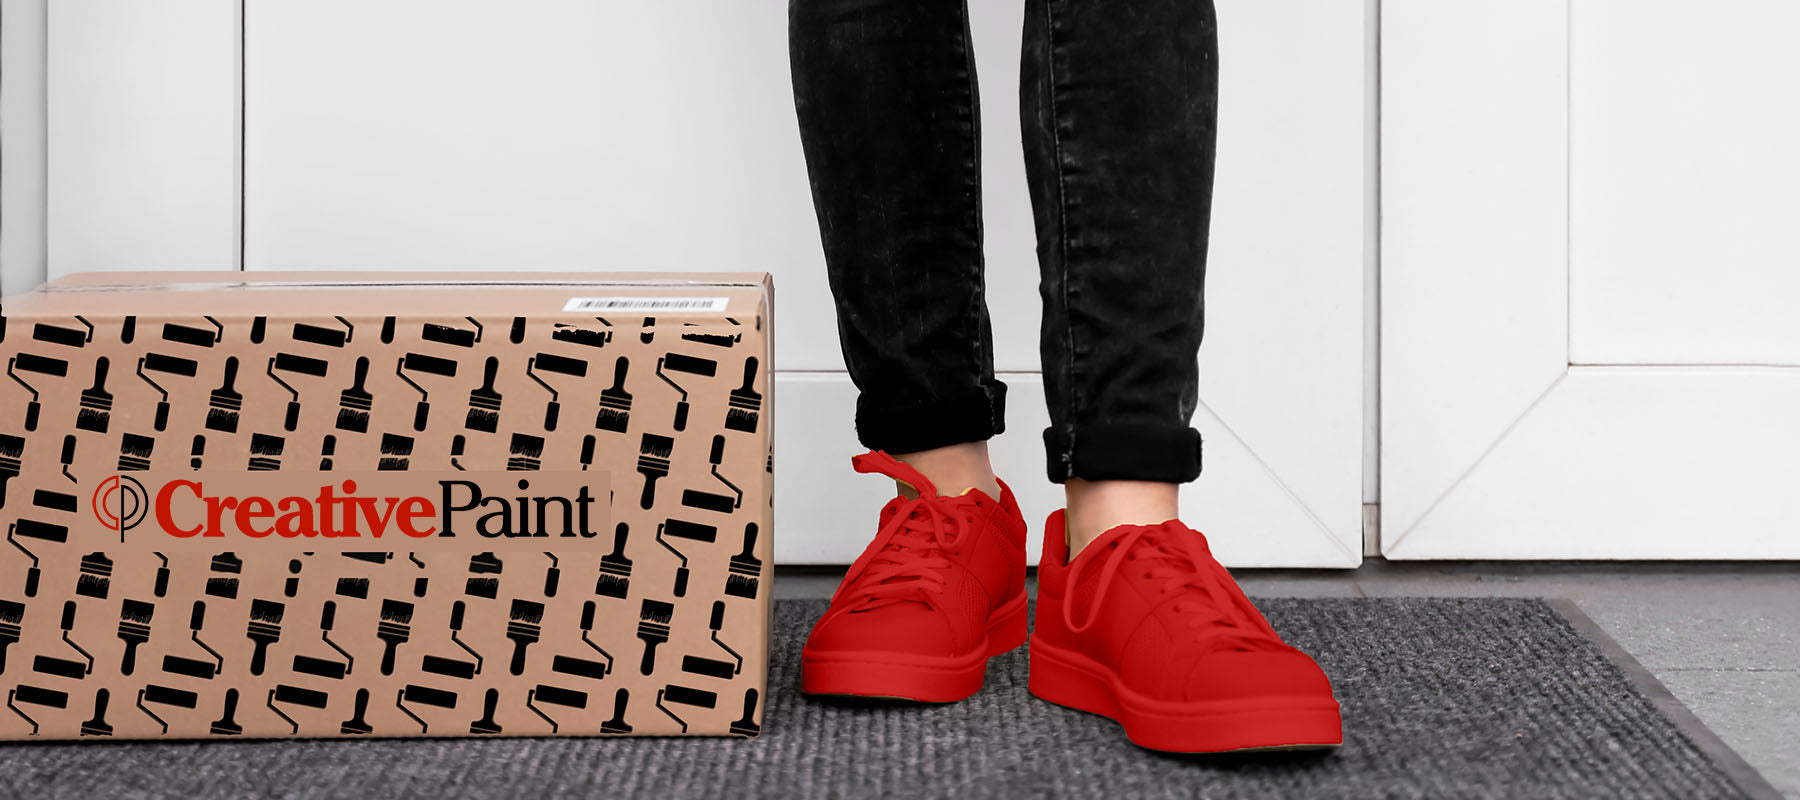 brown cardboard box with Creative Paint logo, sitting on front door step next to woman's red shoes. image showing a paint delivery to residential home in San Fransisco